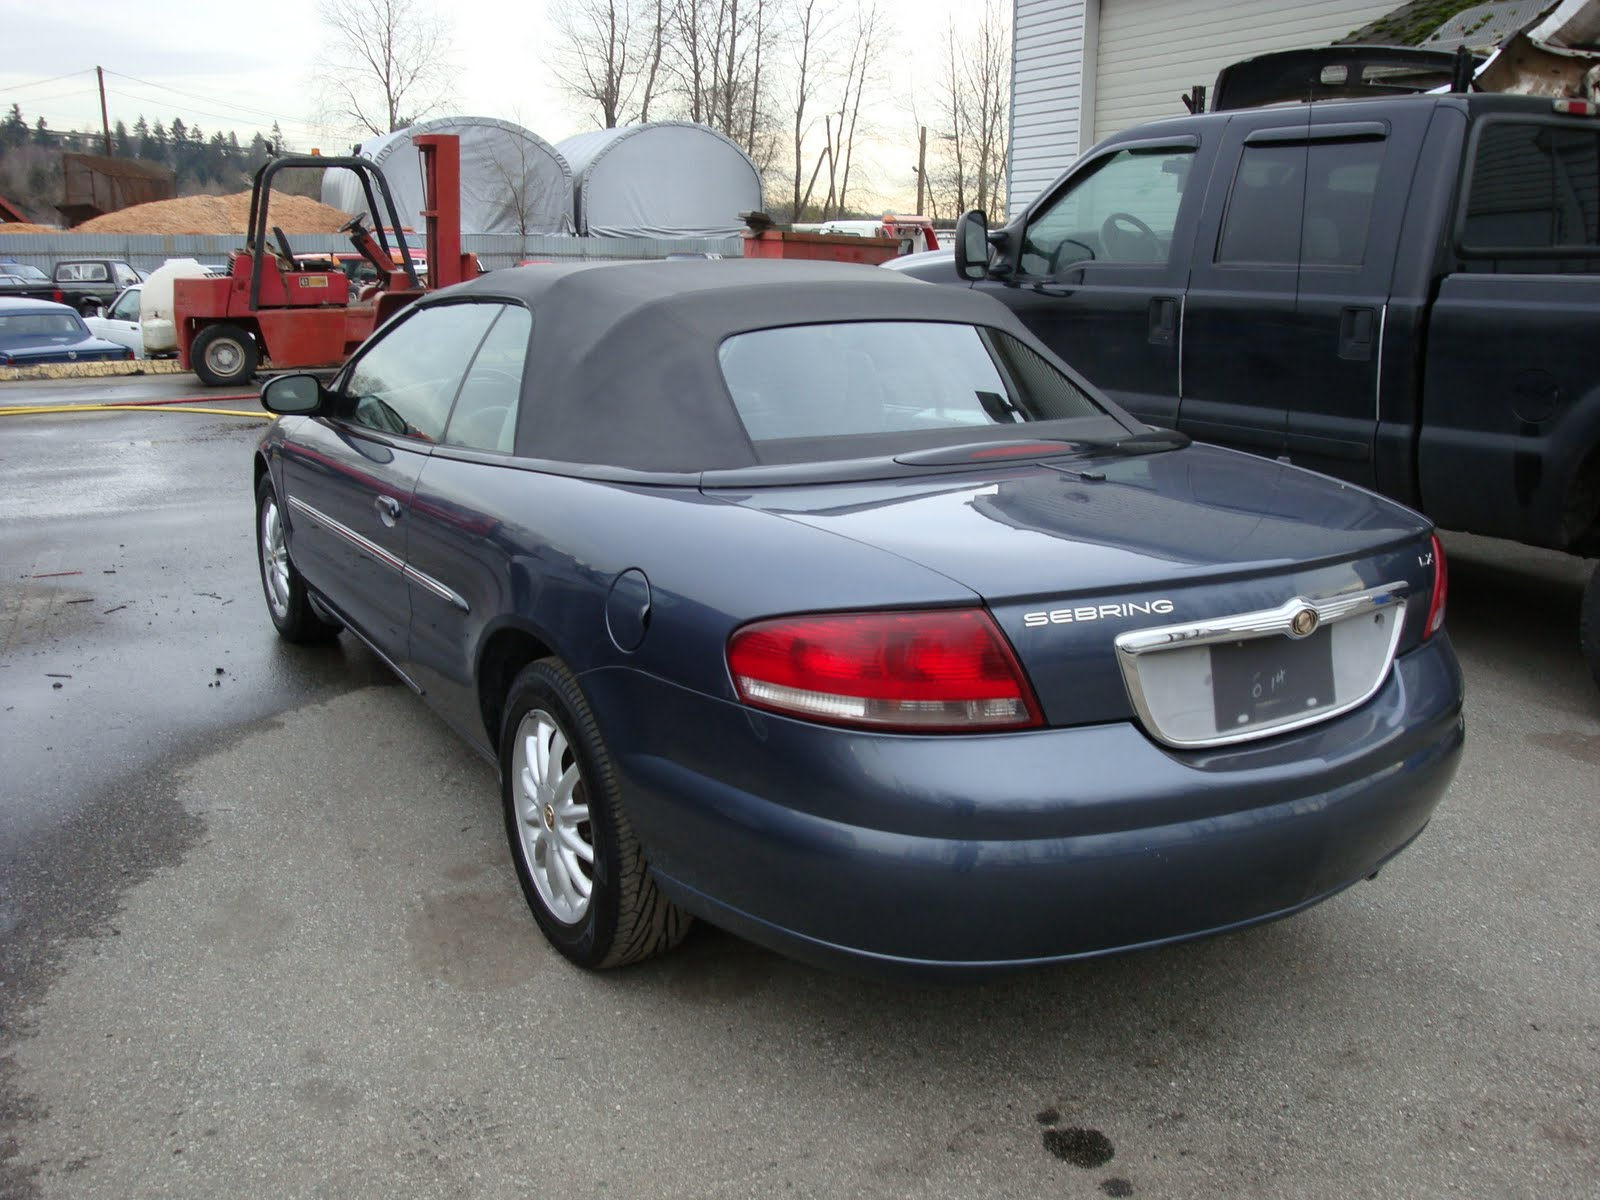 wholesale liquidation centre 2002 chrysler sebring convertible. Cars Review. Best American Auto & Cars Review